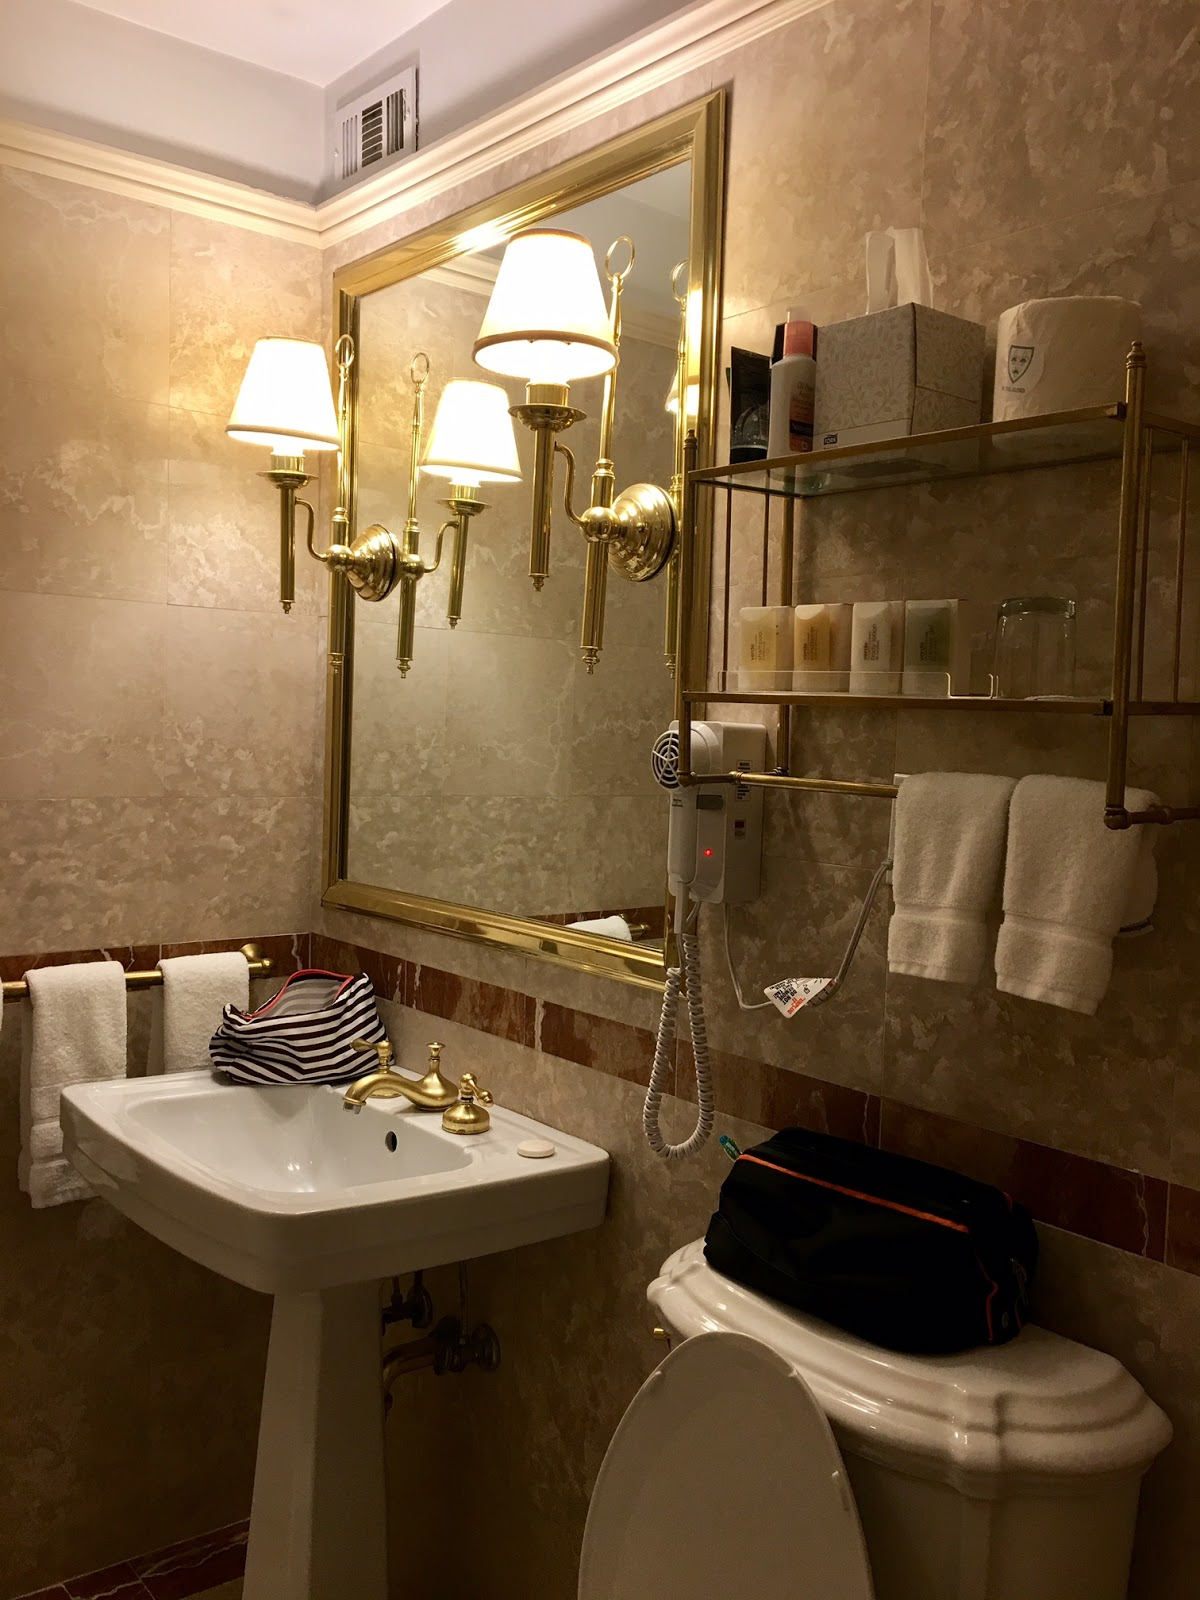 Hotel Elysee Bathroom